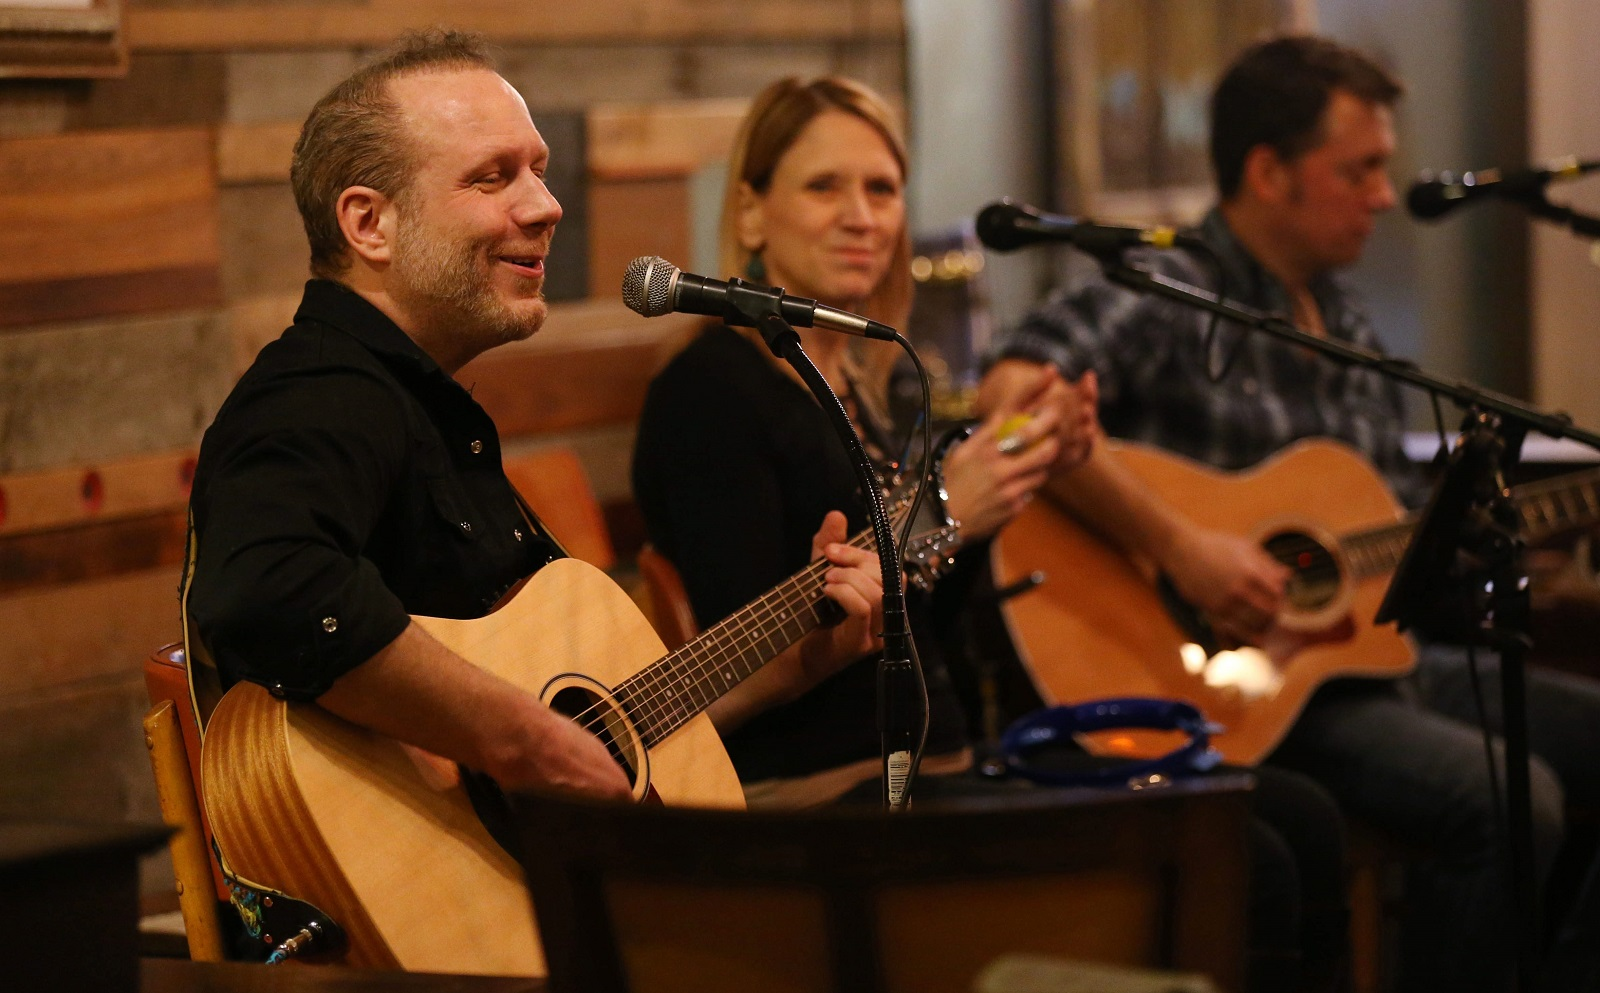 Rob Falgiano, left, performs with the duo Meet the Bacons at Daily Planet. (Sharon Cantillon/Buffalo News)